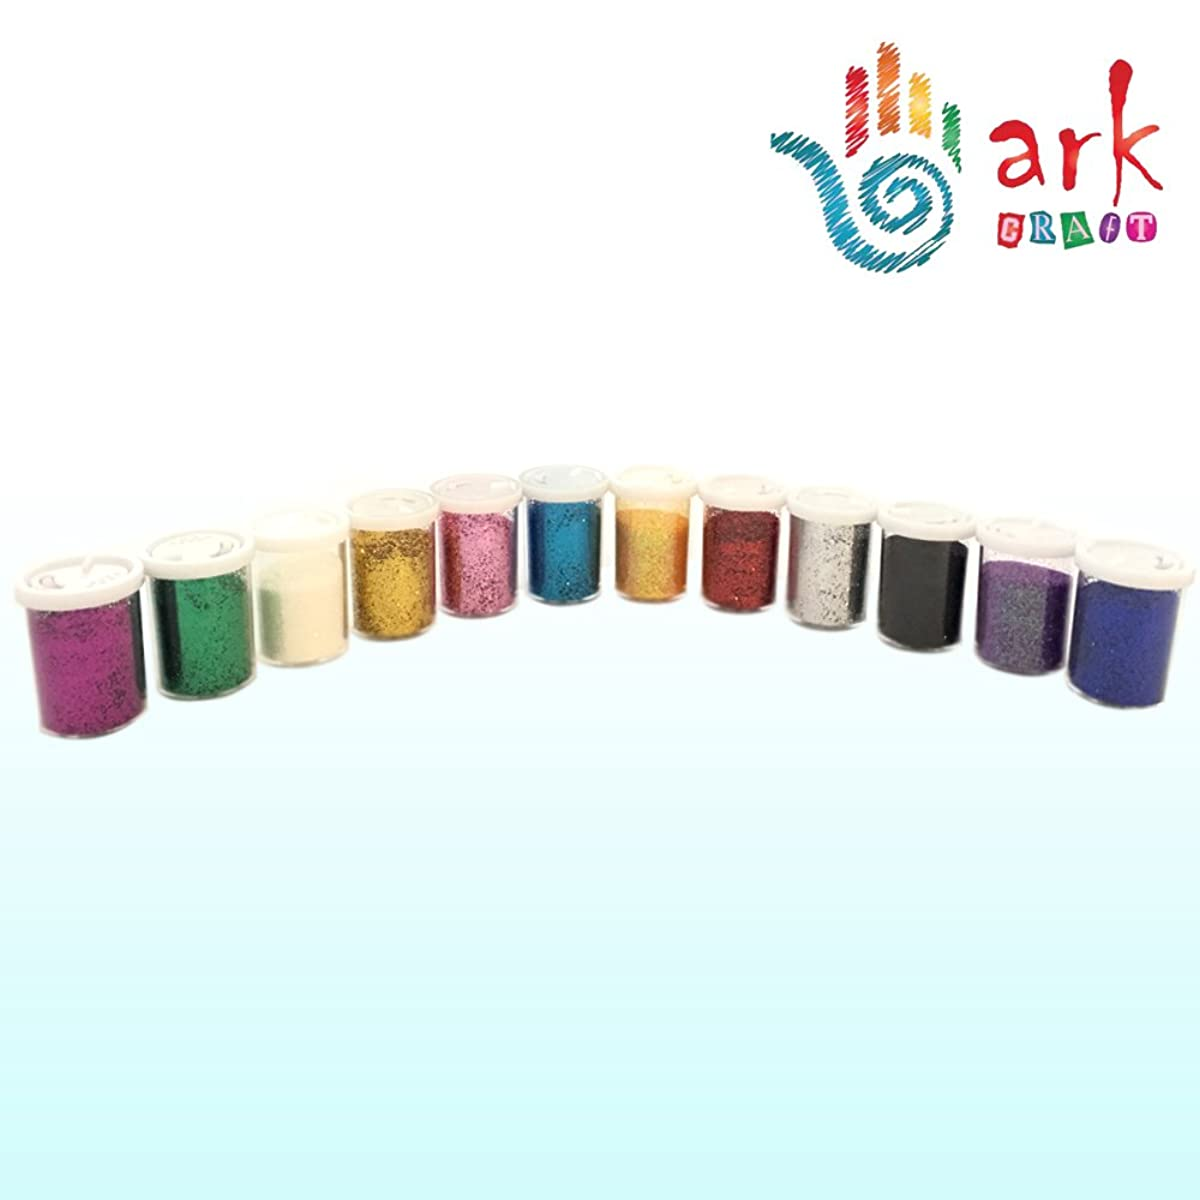 arkCRAFT MIT6H2412 Extra Fine Glitter Shakers, Scrapbooking, Card and Decoration Making-Arts & Crafts Supplies (Set of 12 Assorted Colours) by Ark Craft